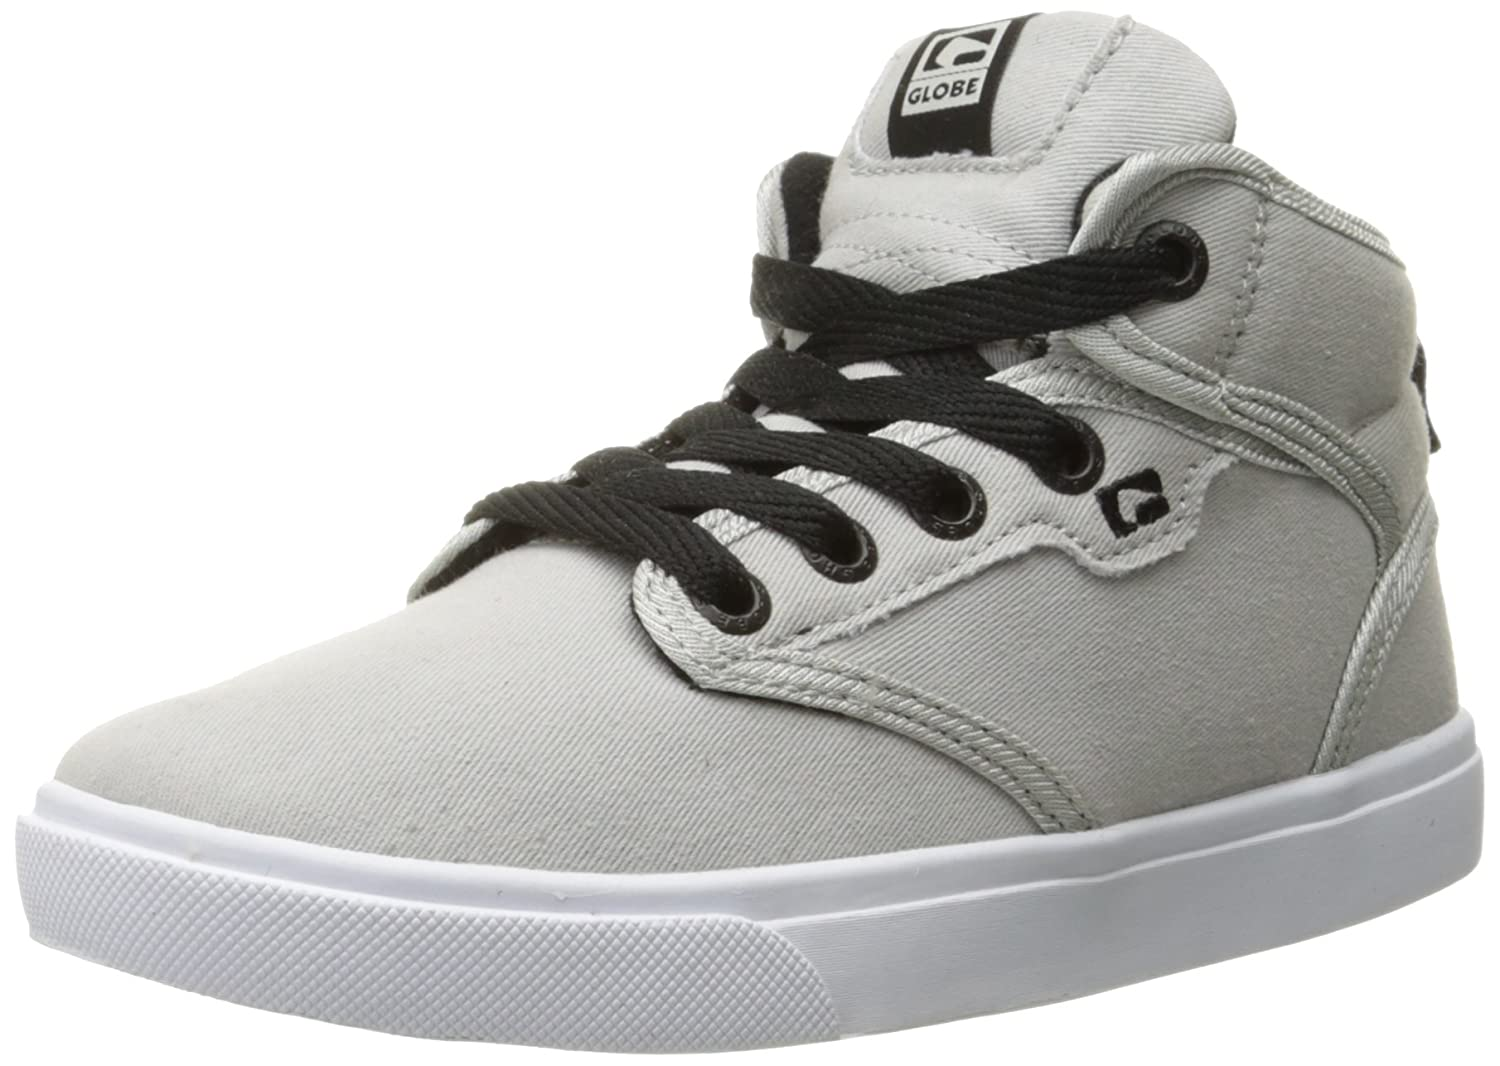 Globe Kids Motley Mid Skateboarding Shoe (Little Kid/Big Kid) Globe Kids Footwear